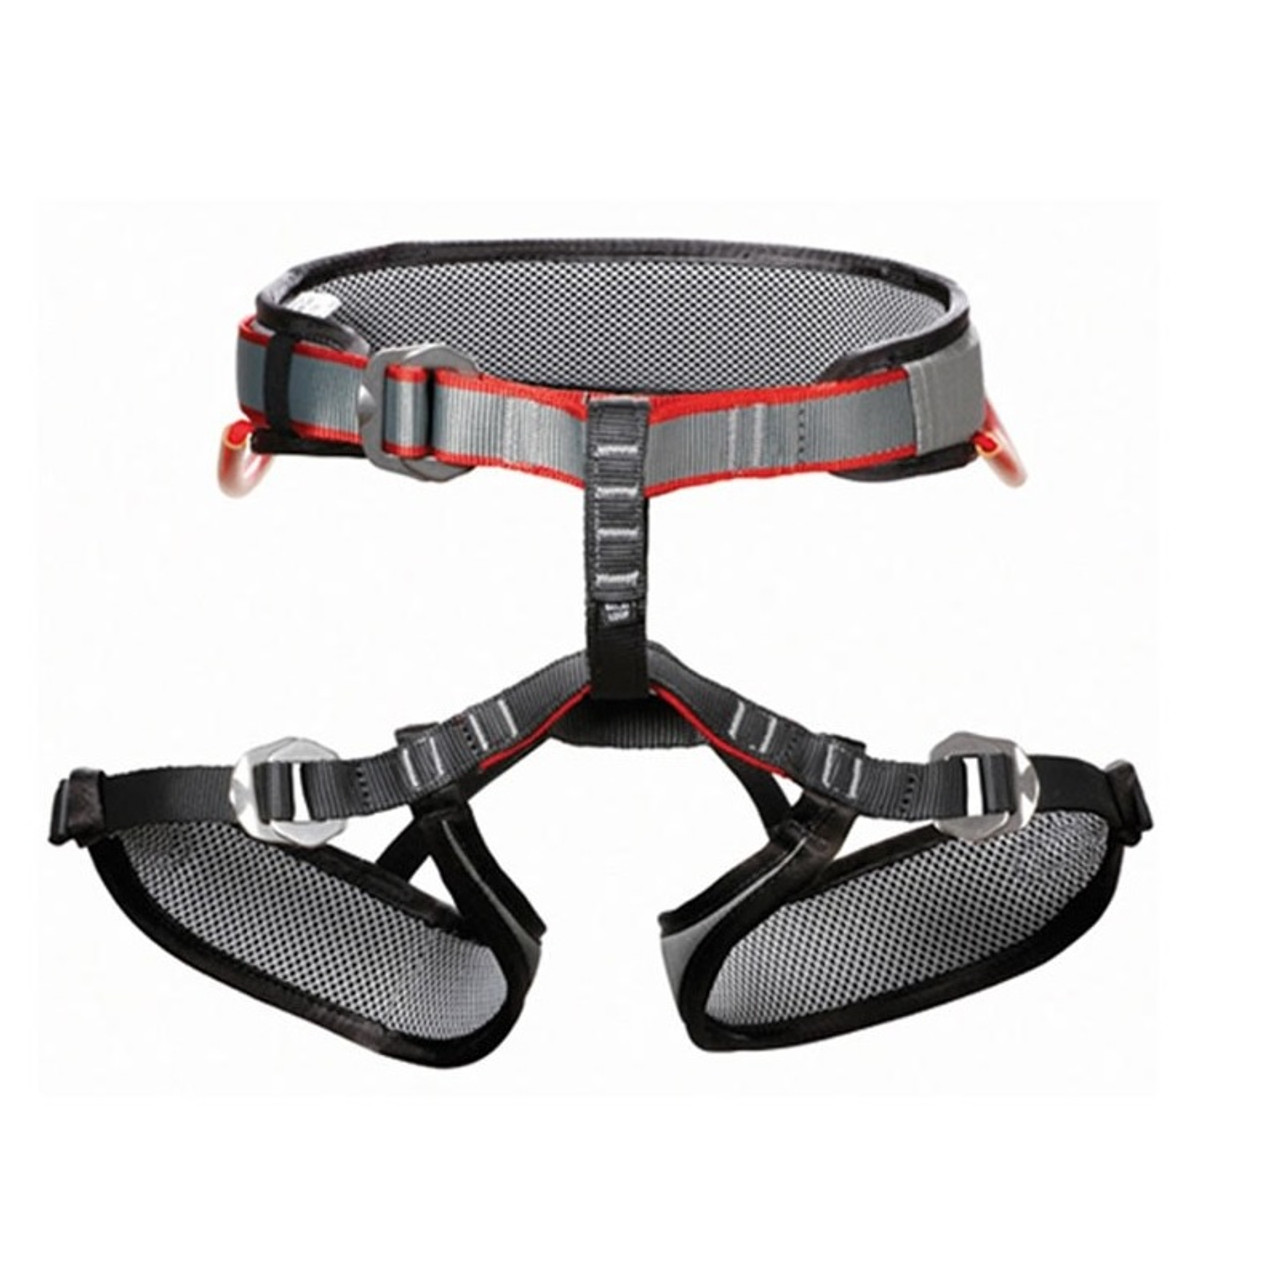 DMM Tomcat Kid's Sit Harness